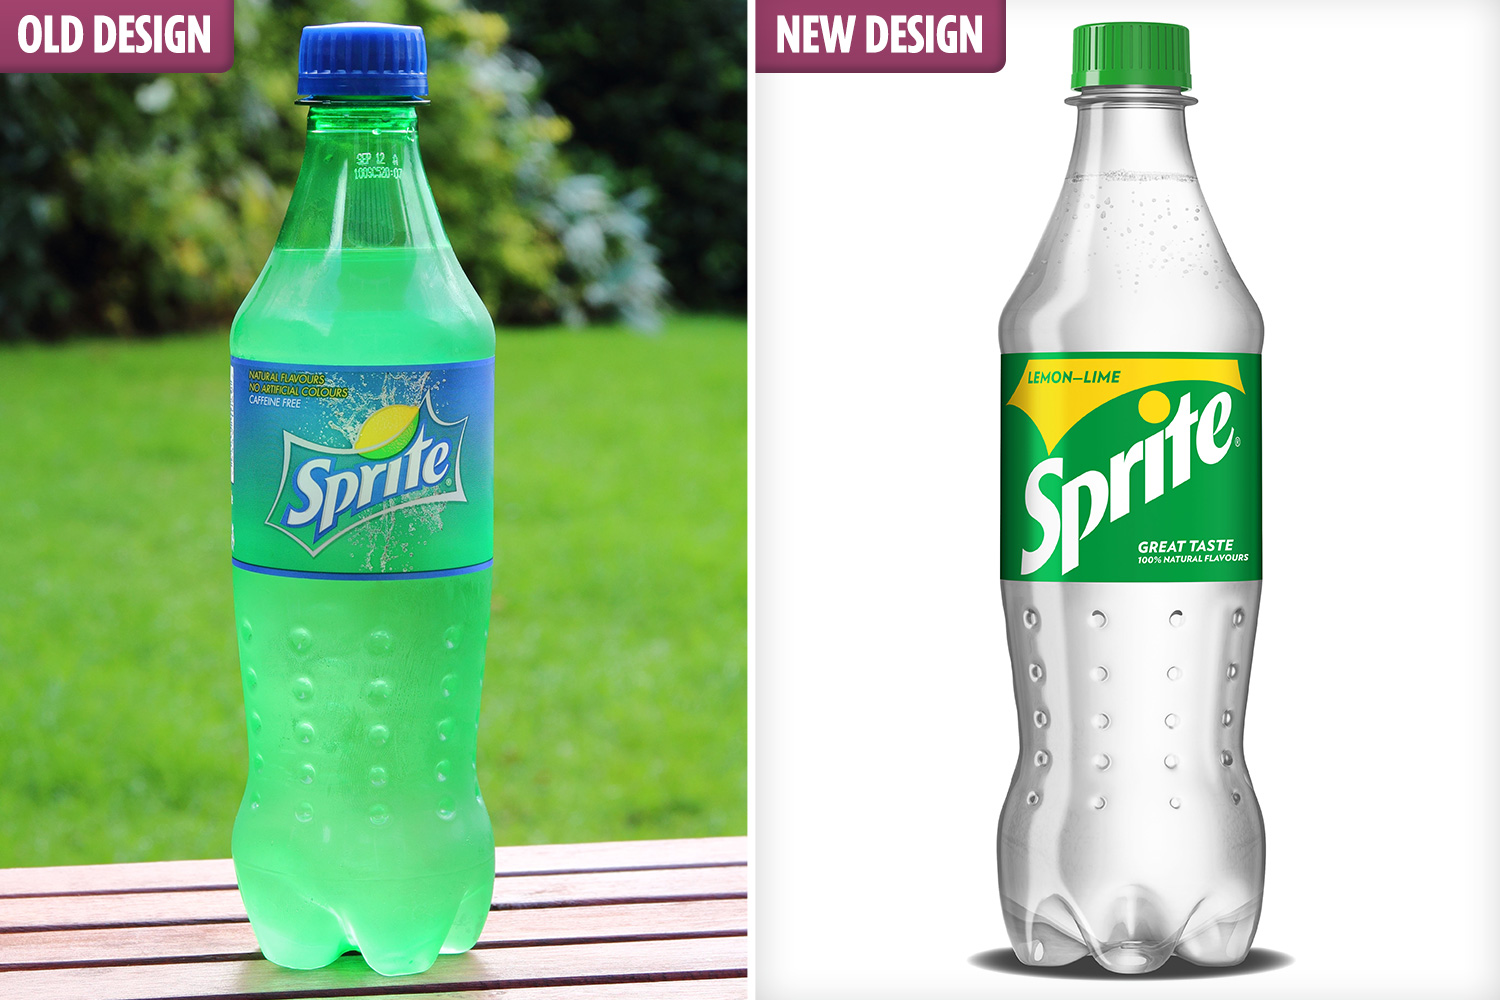 sprite is ditching its